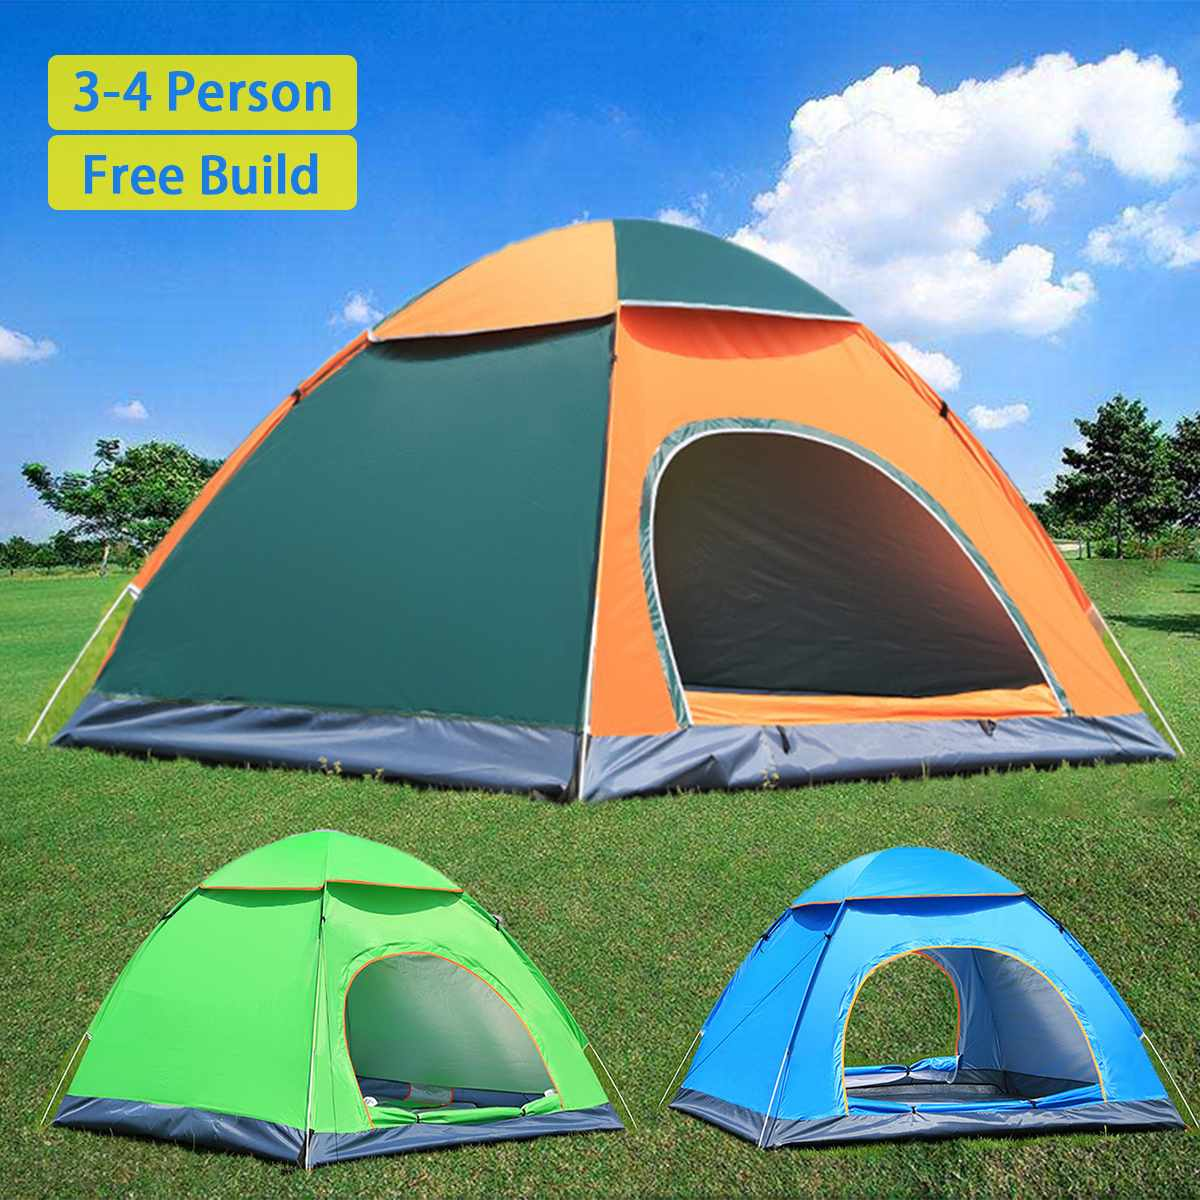 Automatic Family Tent Instant Pop Up Waterproof For Camping Hiking Travel Outdoor Activities